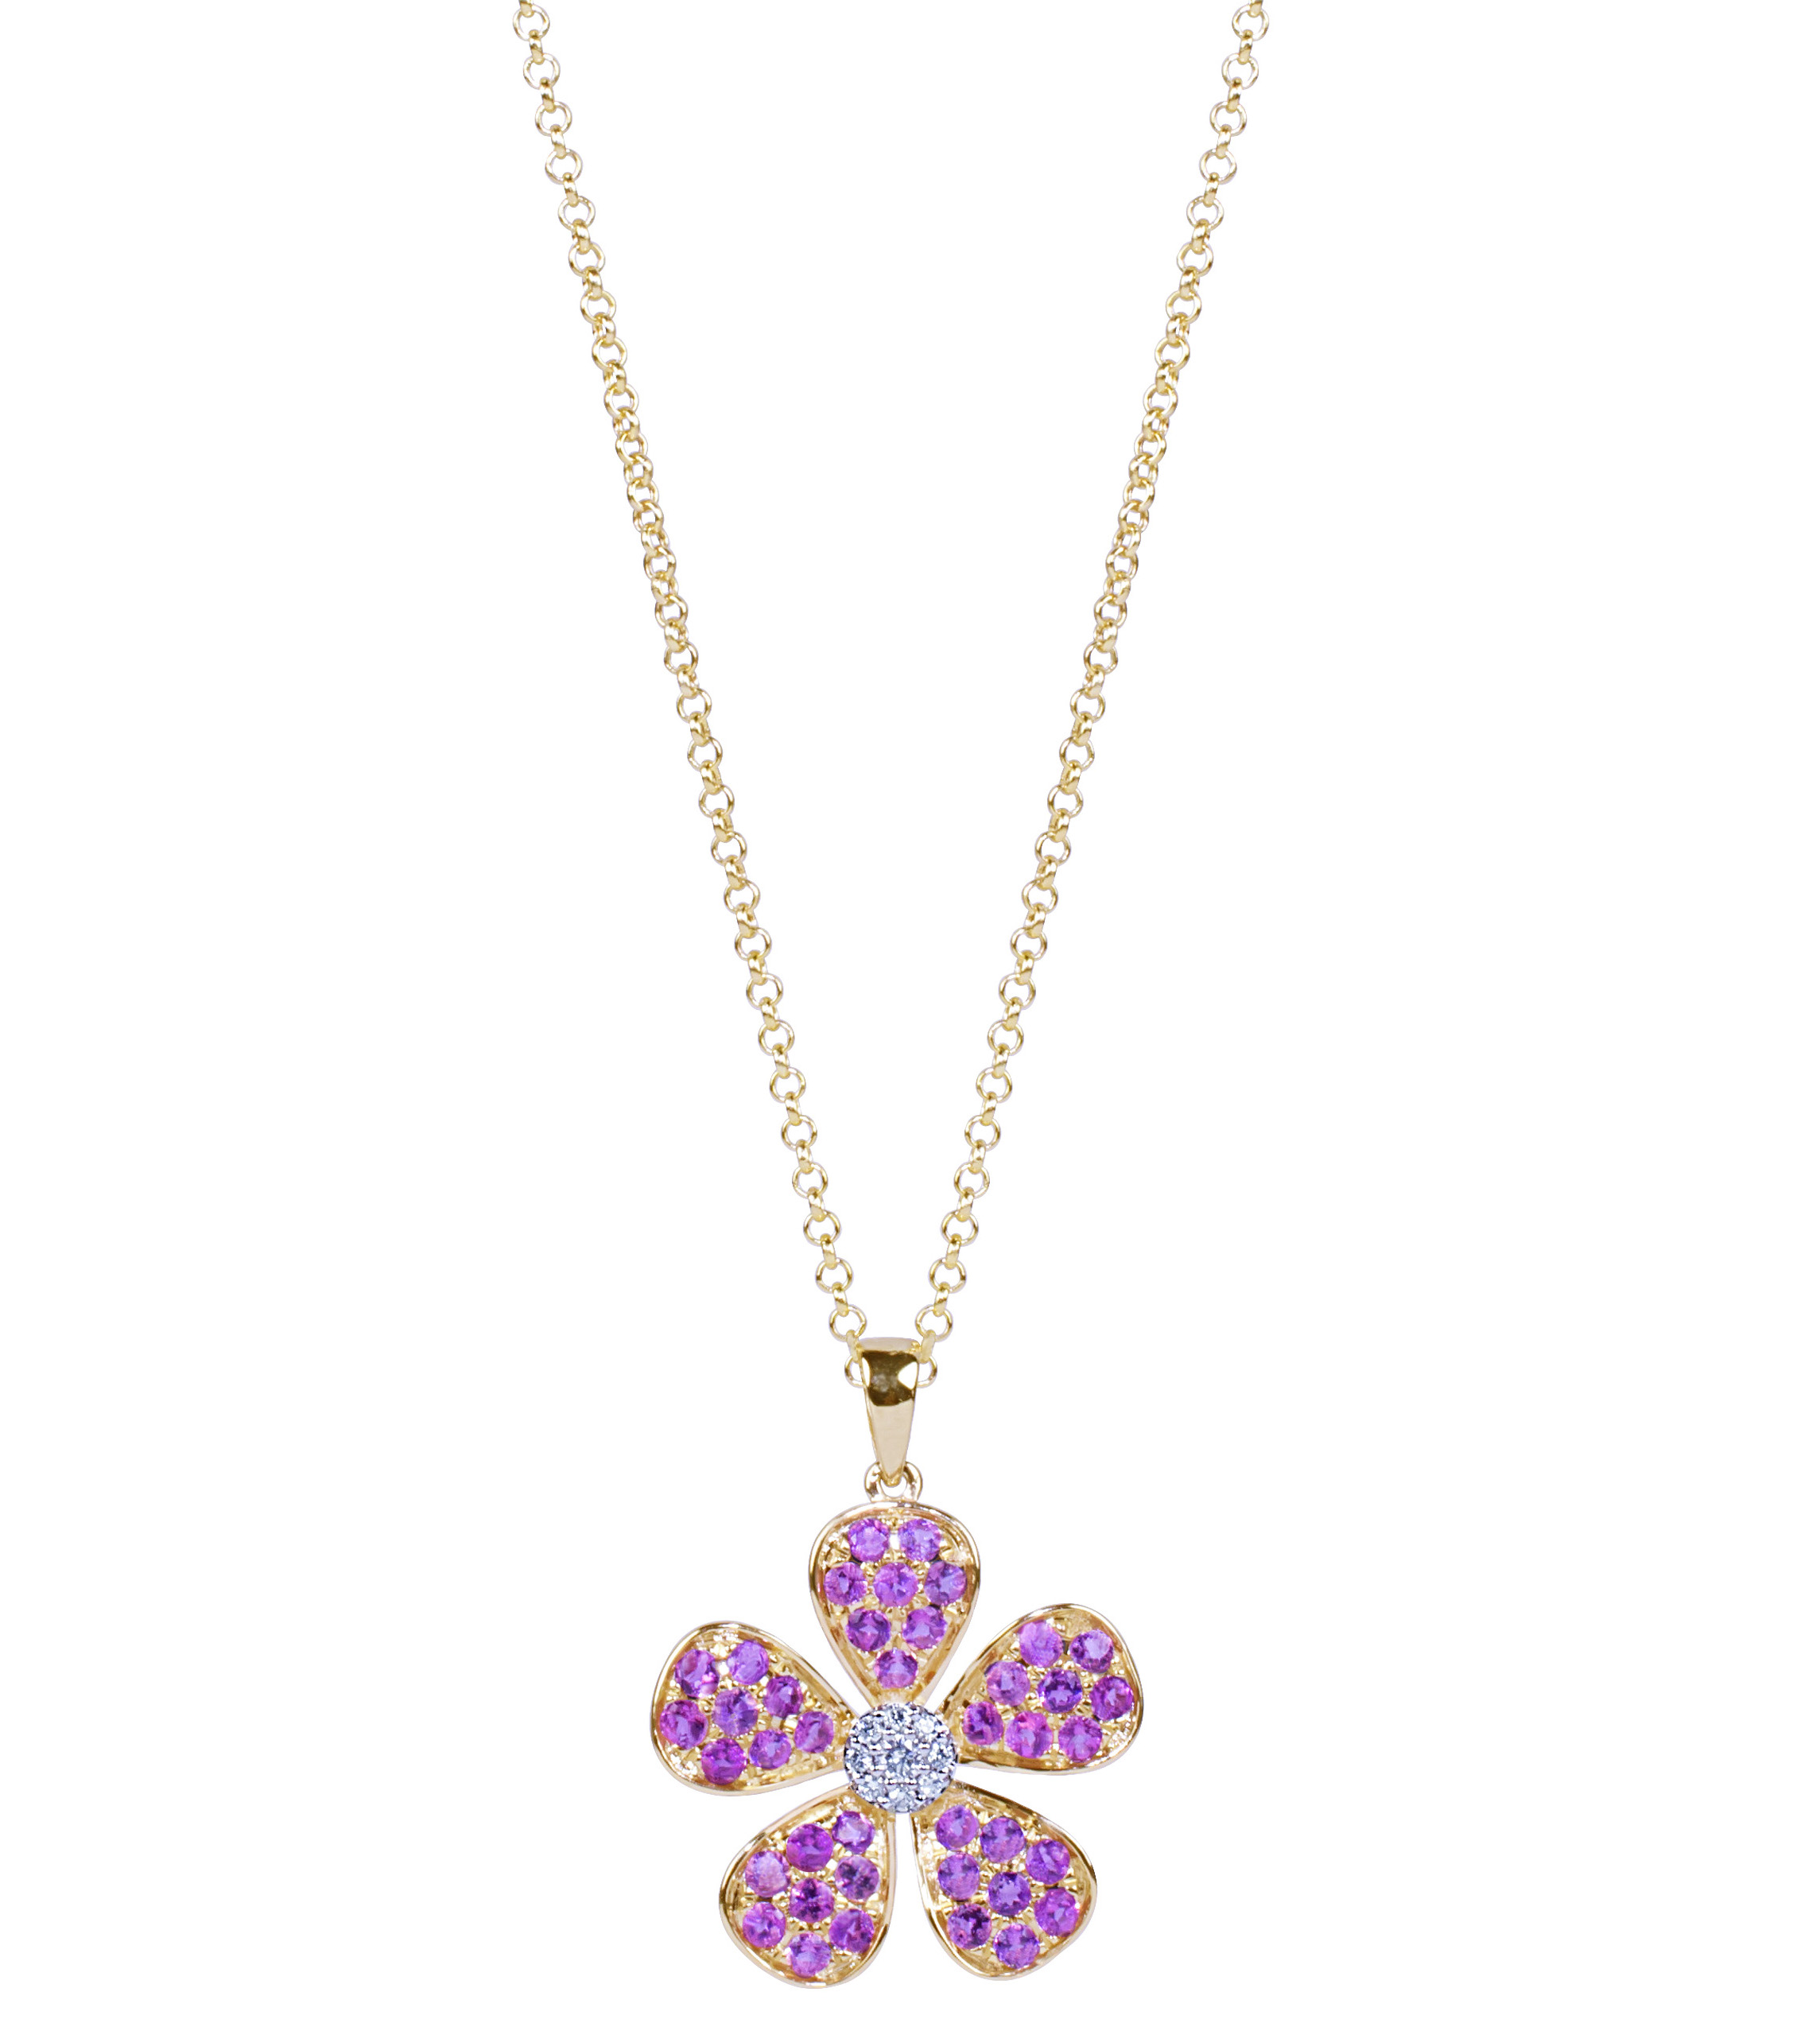 JewelMak pink tourmaline and diamond flower pendant | JCK On Your Market